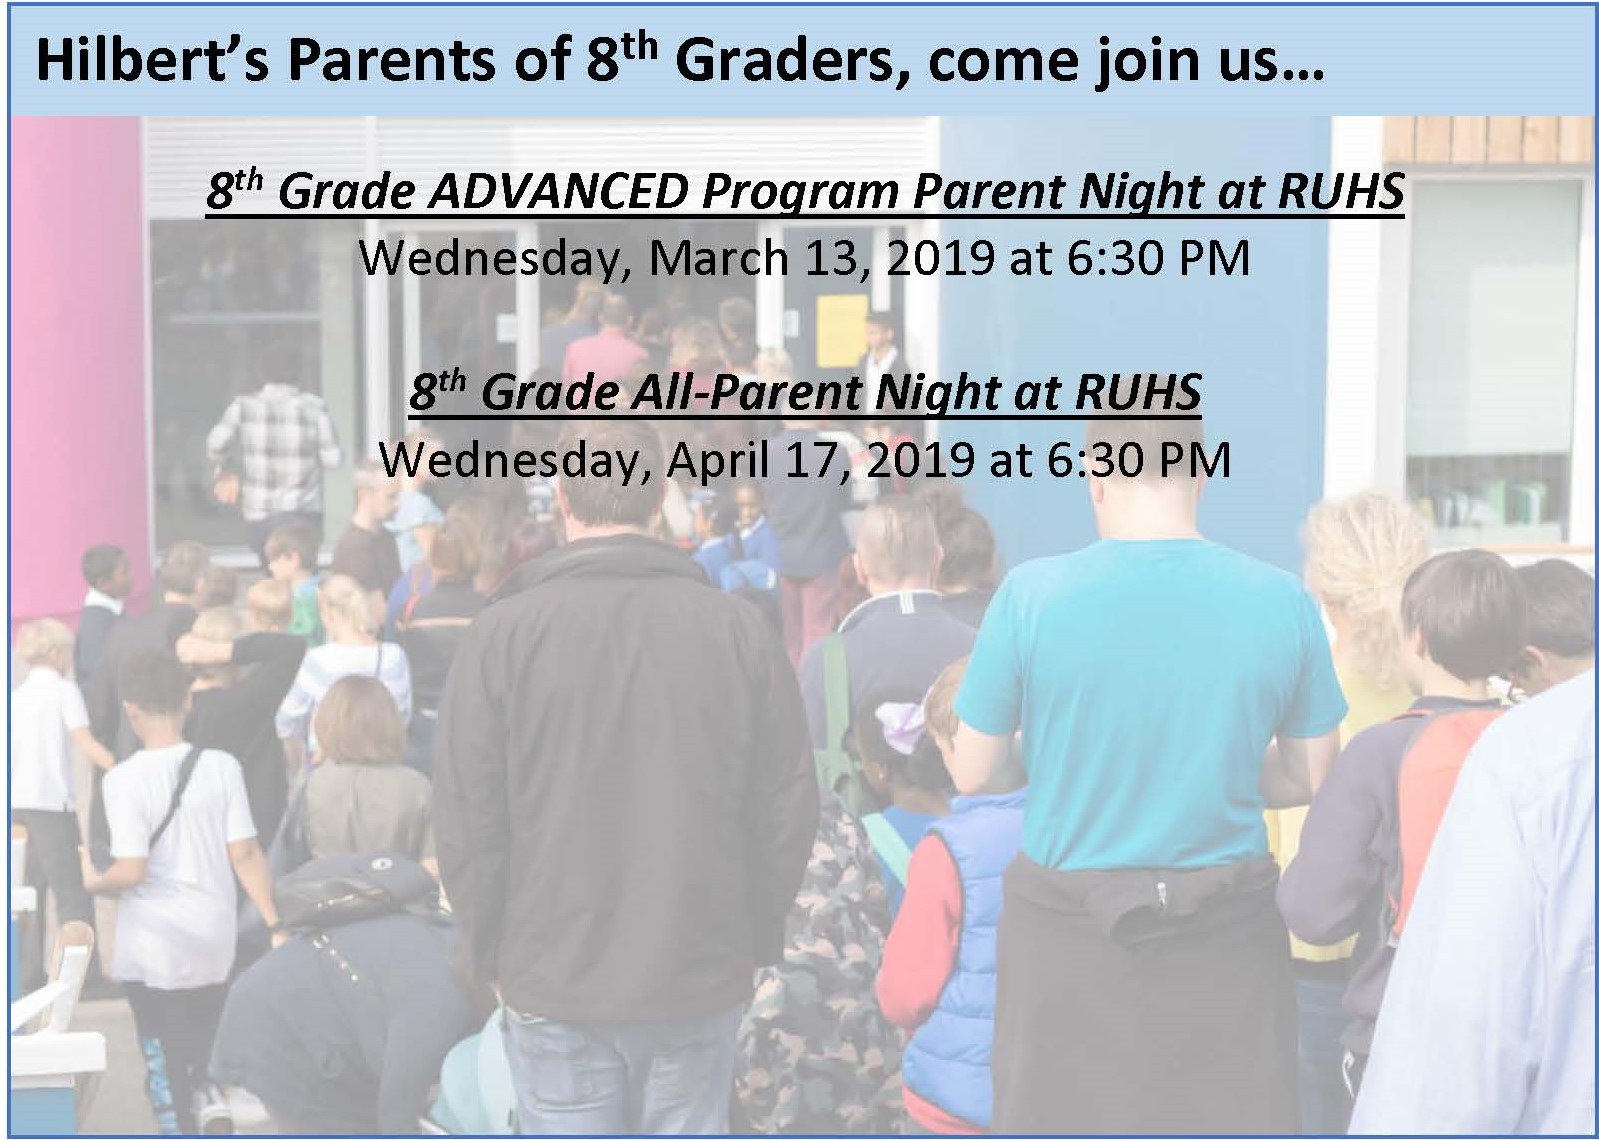 Hilbert's Parents of 8th Graders, come join us... 8th Grade ADVANCED Program Parent Night at RUHS, Wednesday, March 13, 2019 at 6:30 PM   and    8th Grade All-Parent Night at RUHS, Wednesday, April 17, 2019 at 6:30 PM